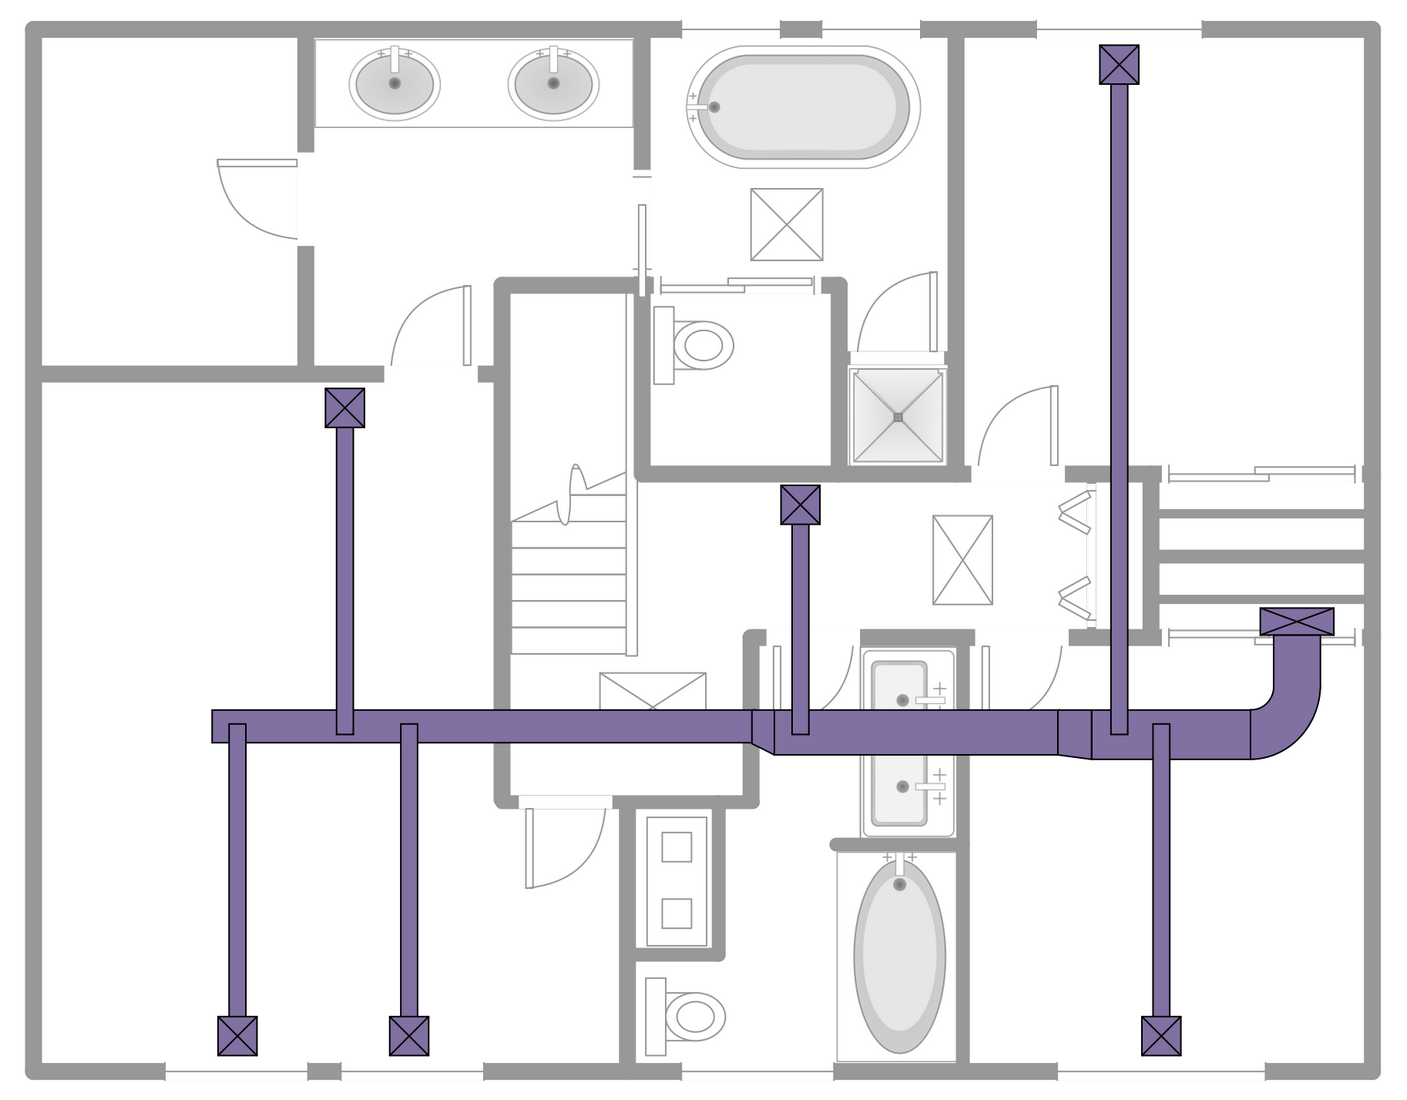 small resolution of ductwork layout the ducts are ones of the basic elements in a heating ventilation and air conditioning system which are used to deliver and remove the